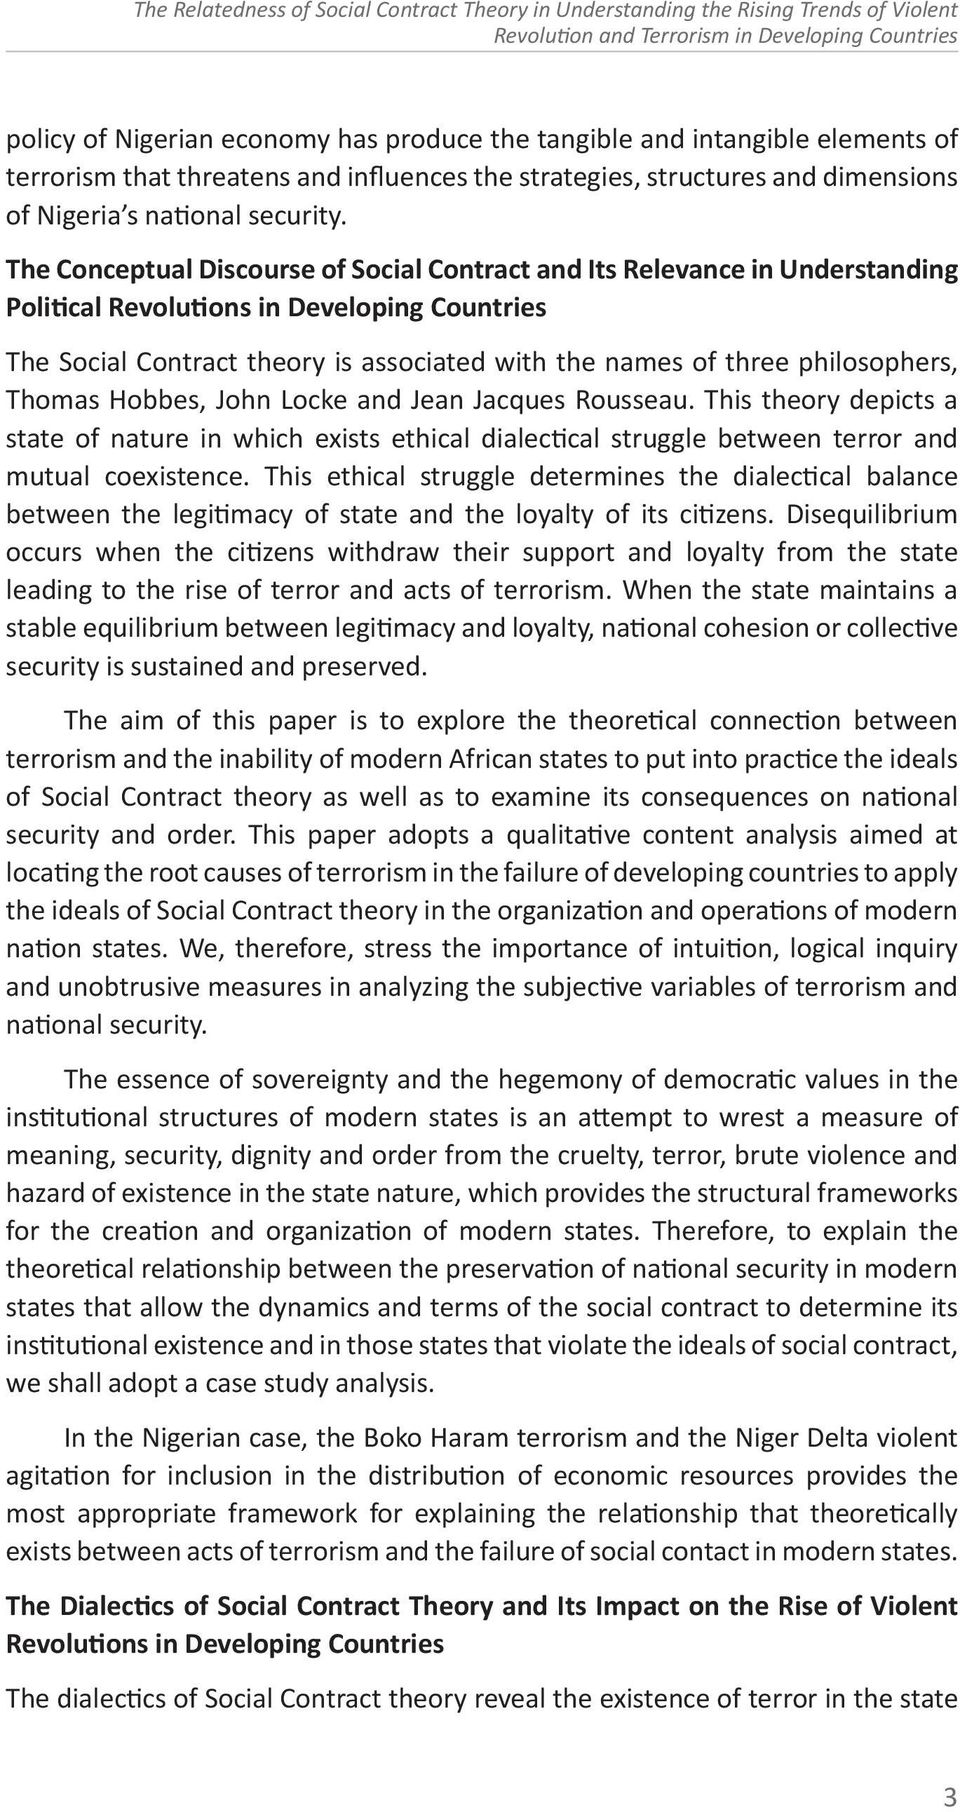 The Conceptual Discourse of Social Contract and Its Relevance in Understanding Political Revolutions in Developing Countries The Social Contract theory is associated with the names of three